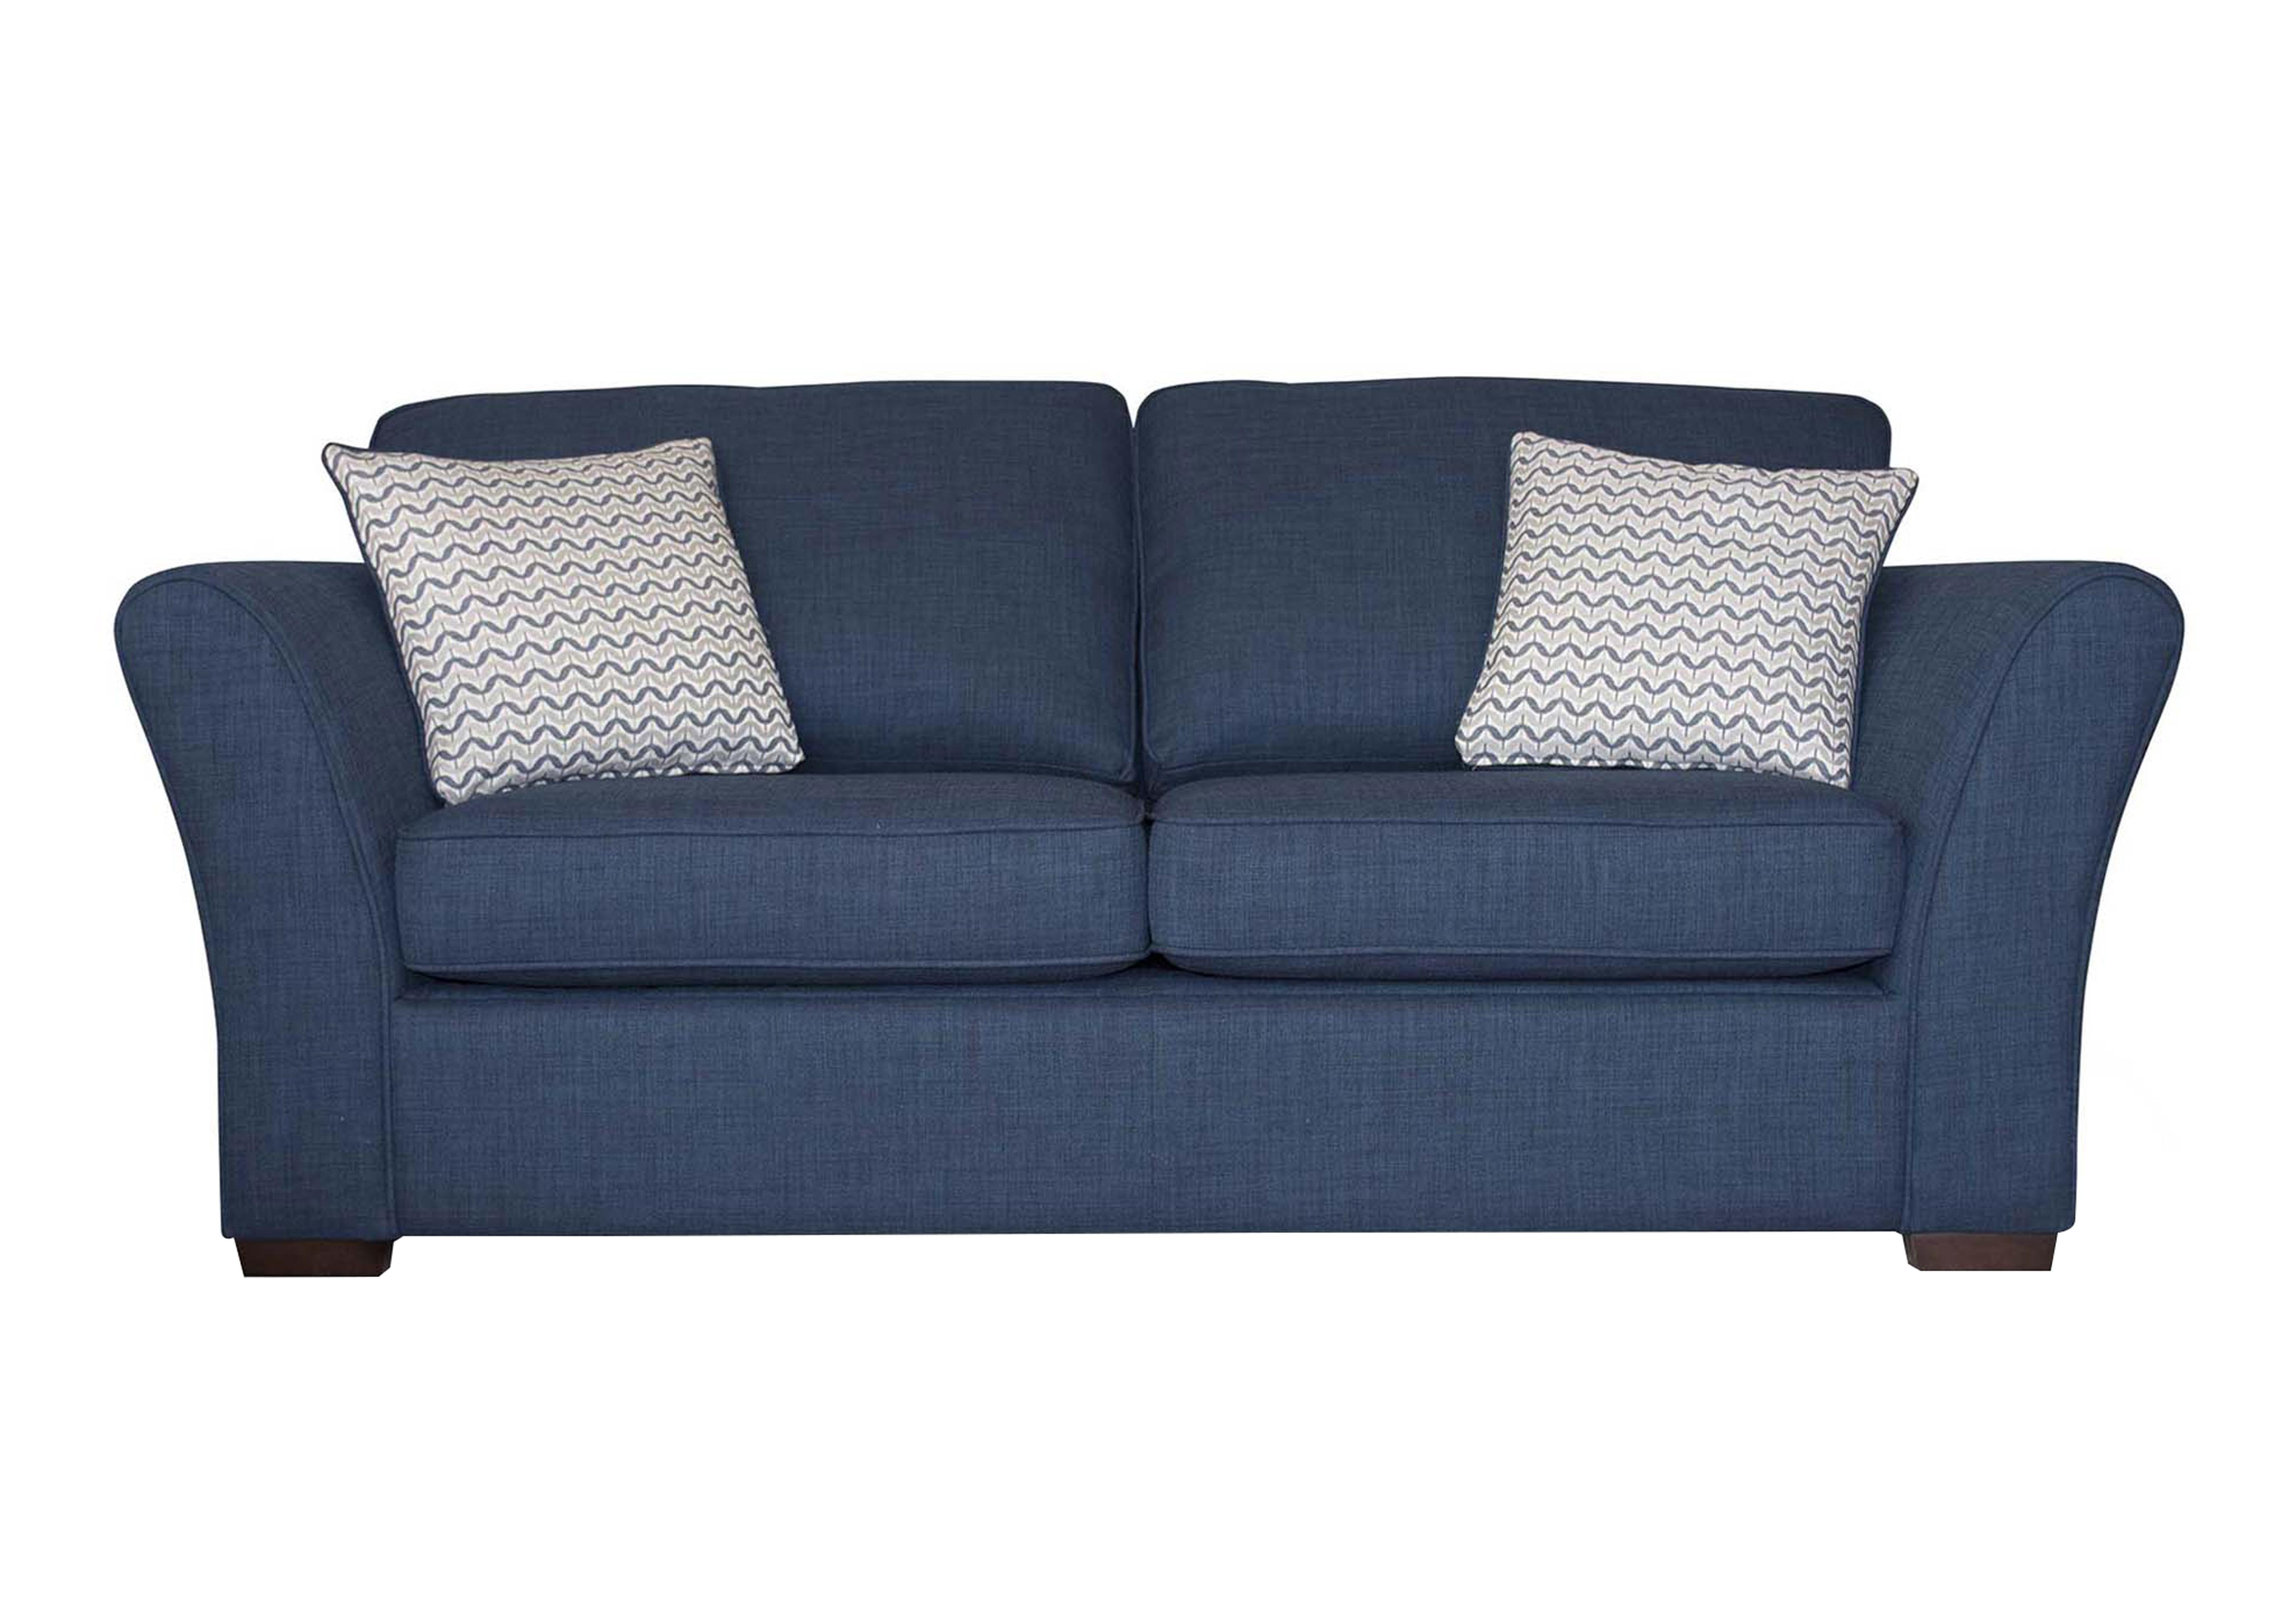 2 seater sofa bed furniture village loukas leather reclining sectional twilight fabric -